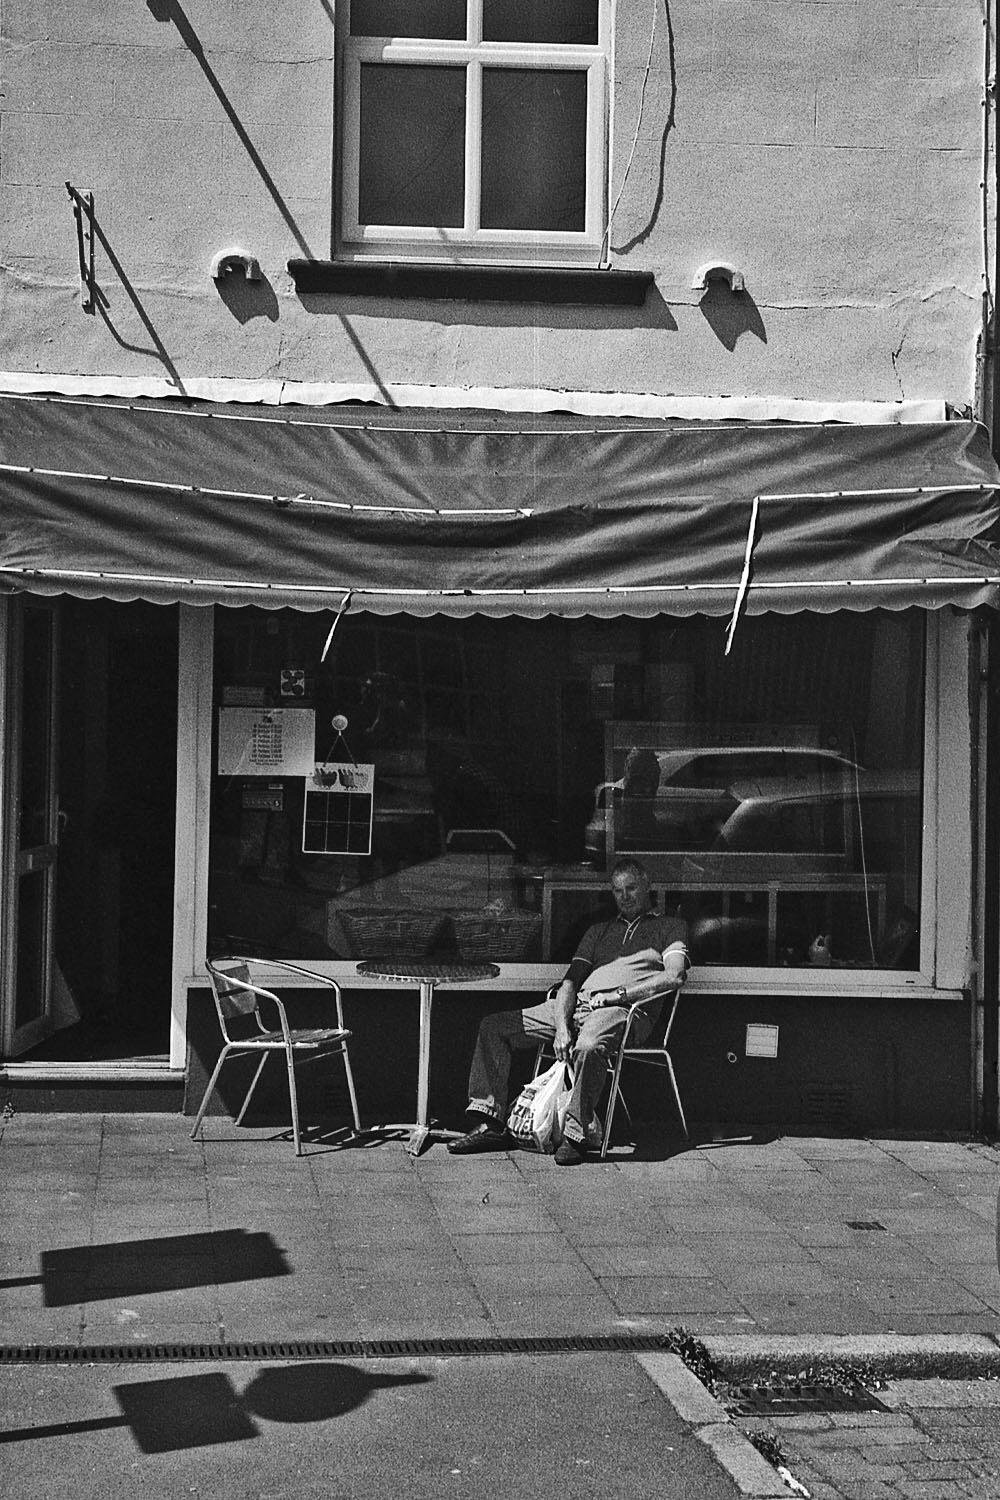 man sat outside cafe whitehaven street photography uk photographer kevin shelley prints for sale leica m2 jupiter 8 50 f2